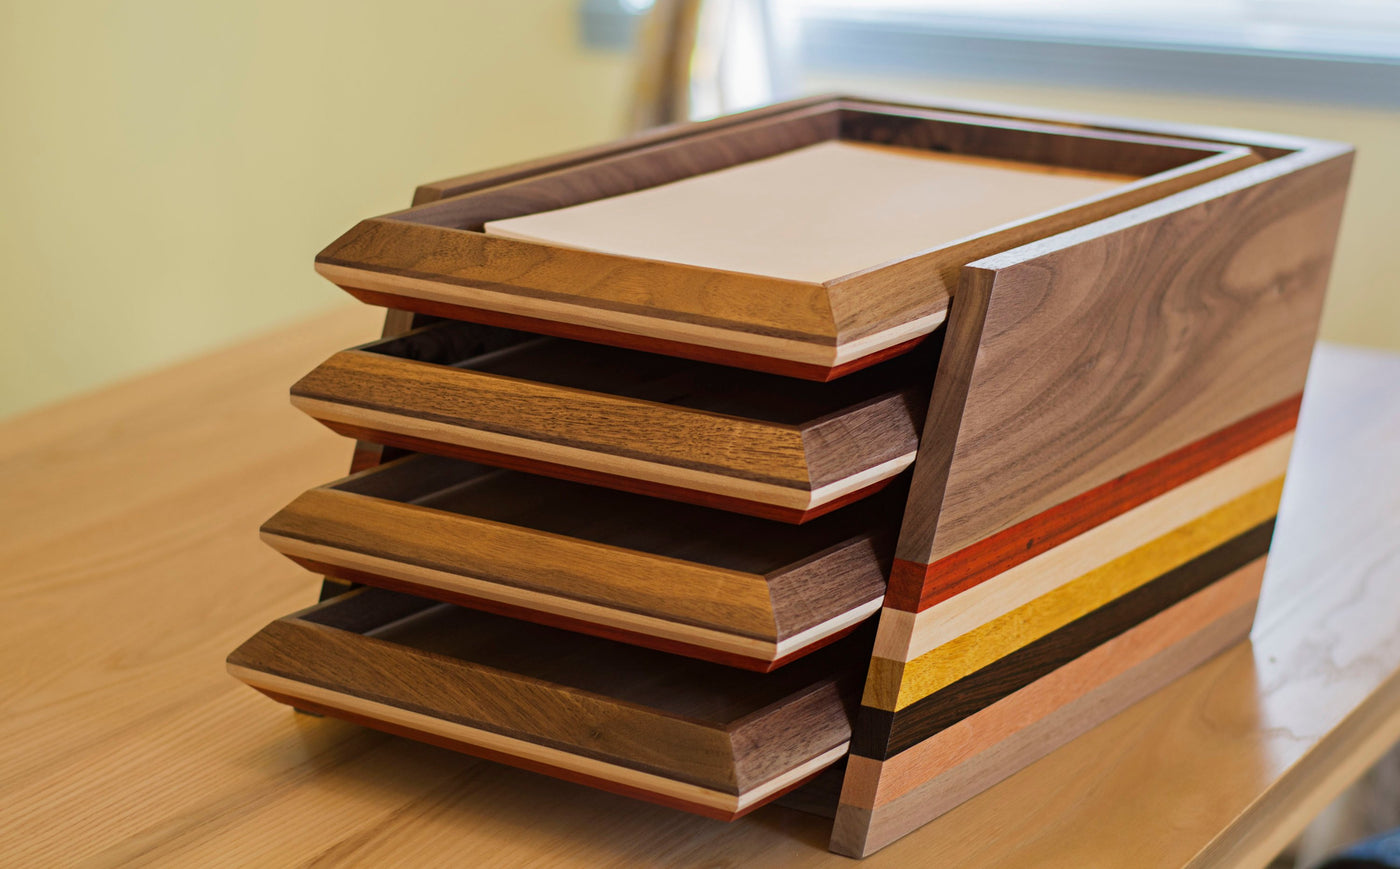 4 Tier Wood Paper Tray Document Holder In Walnut Maple And Padauk Woo Adh Woodwork